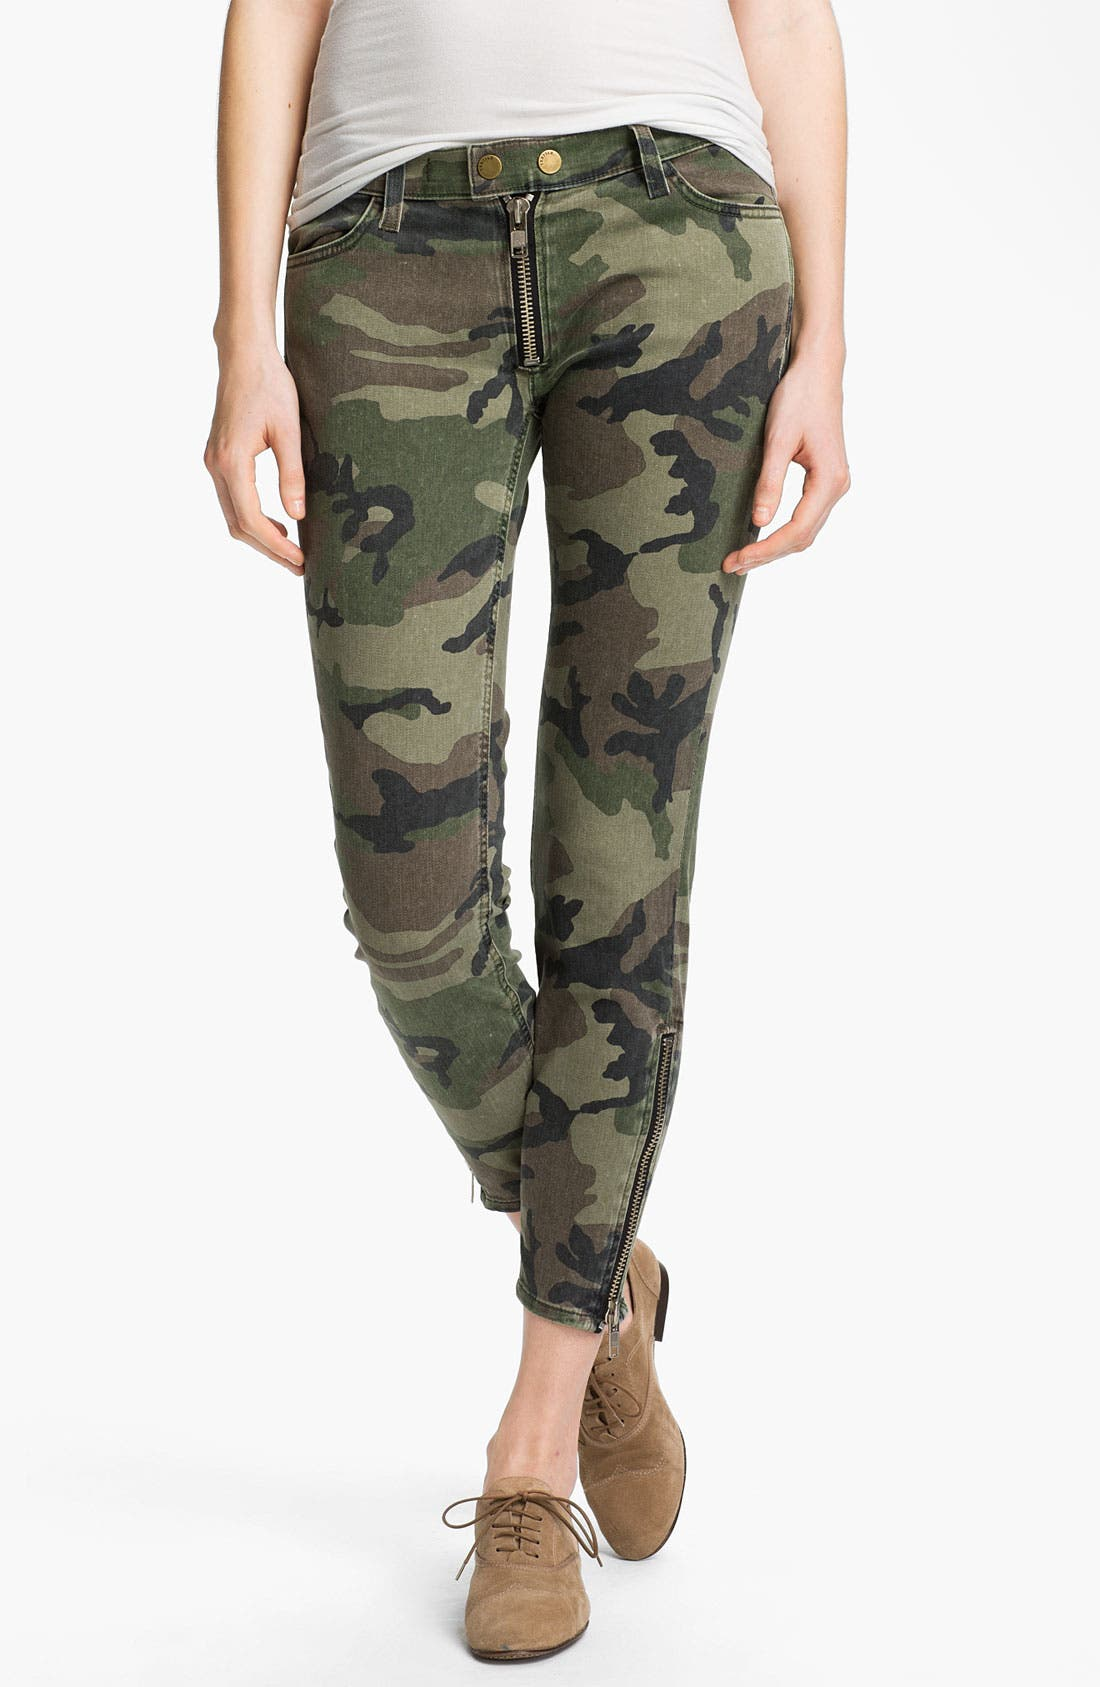 Alternate Image 1 Selected - TEXTILE Elizabeth and James 'Cooper' Skinny Camo Print Jeans